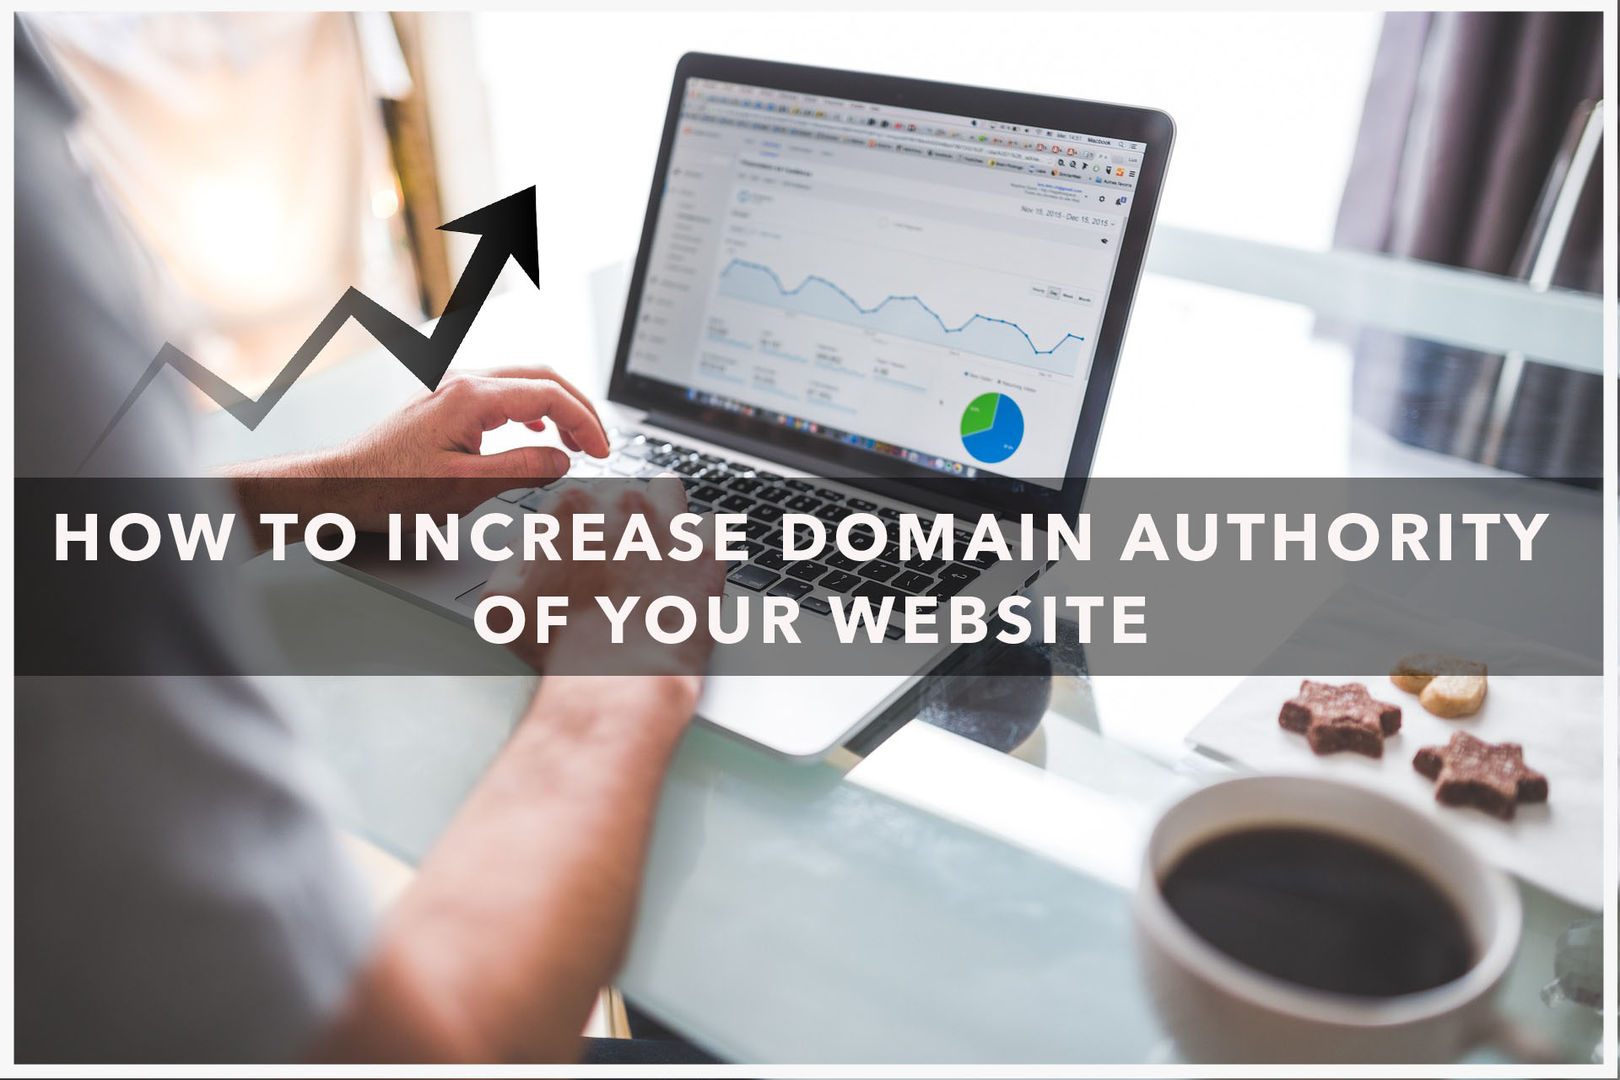 How To Increase Domain Authority (DA) Of A Website